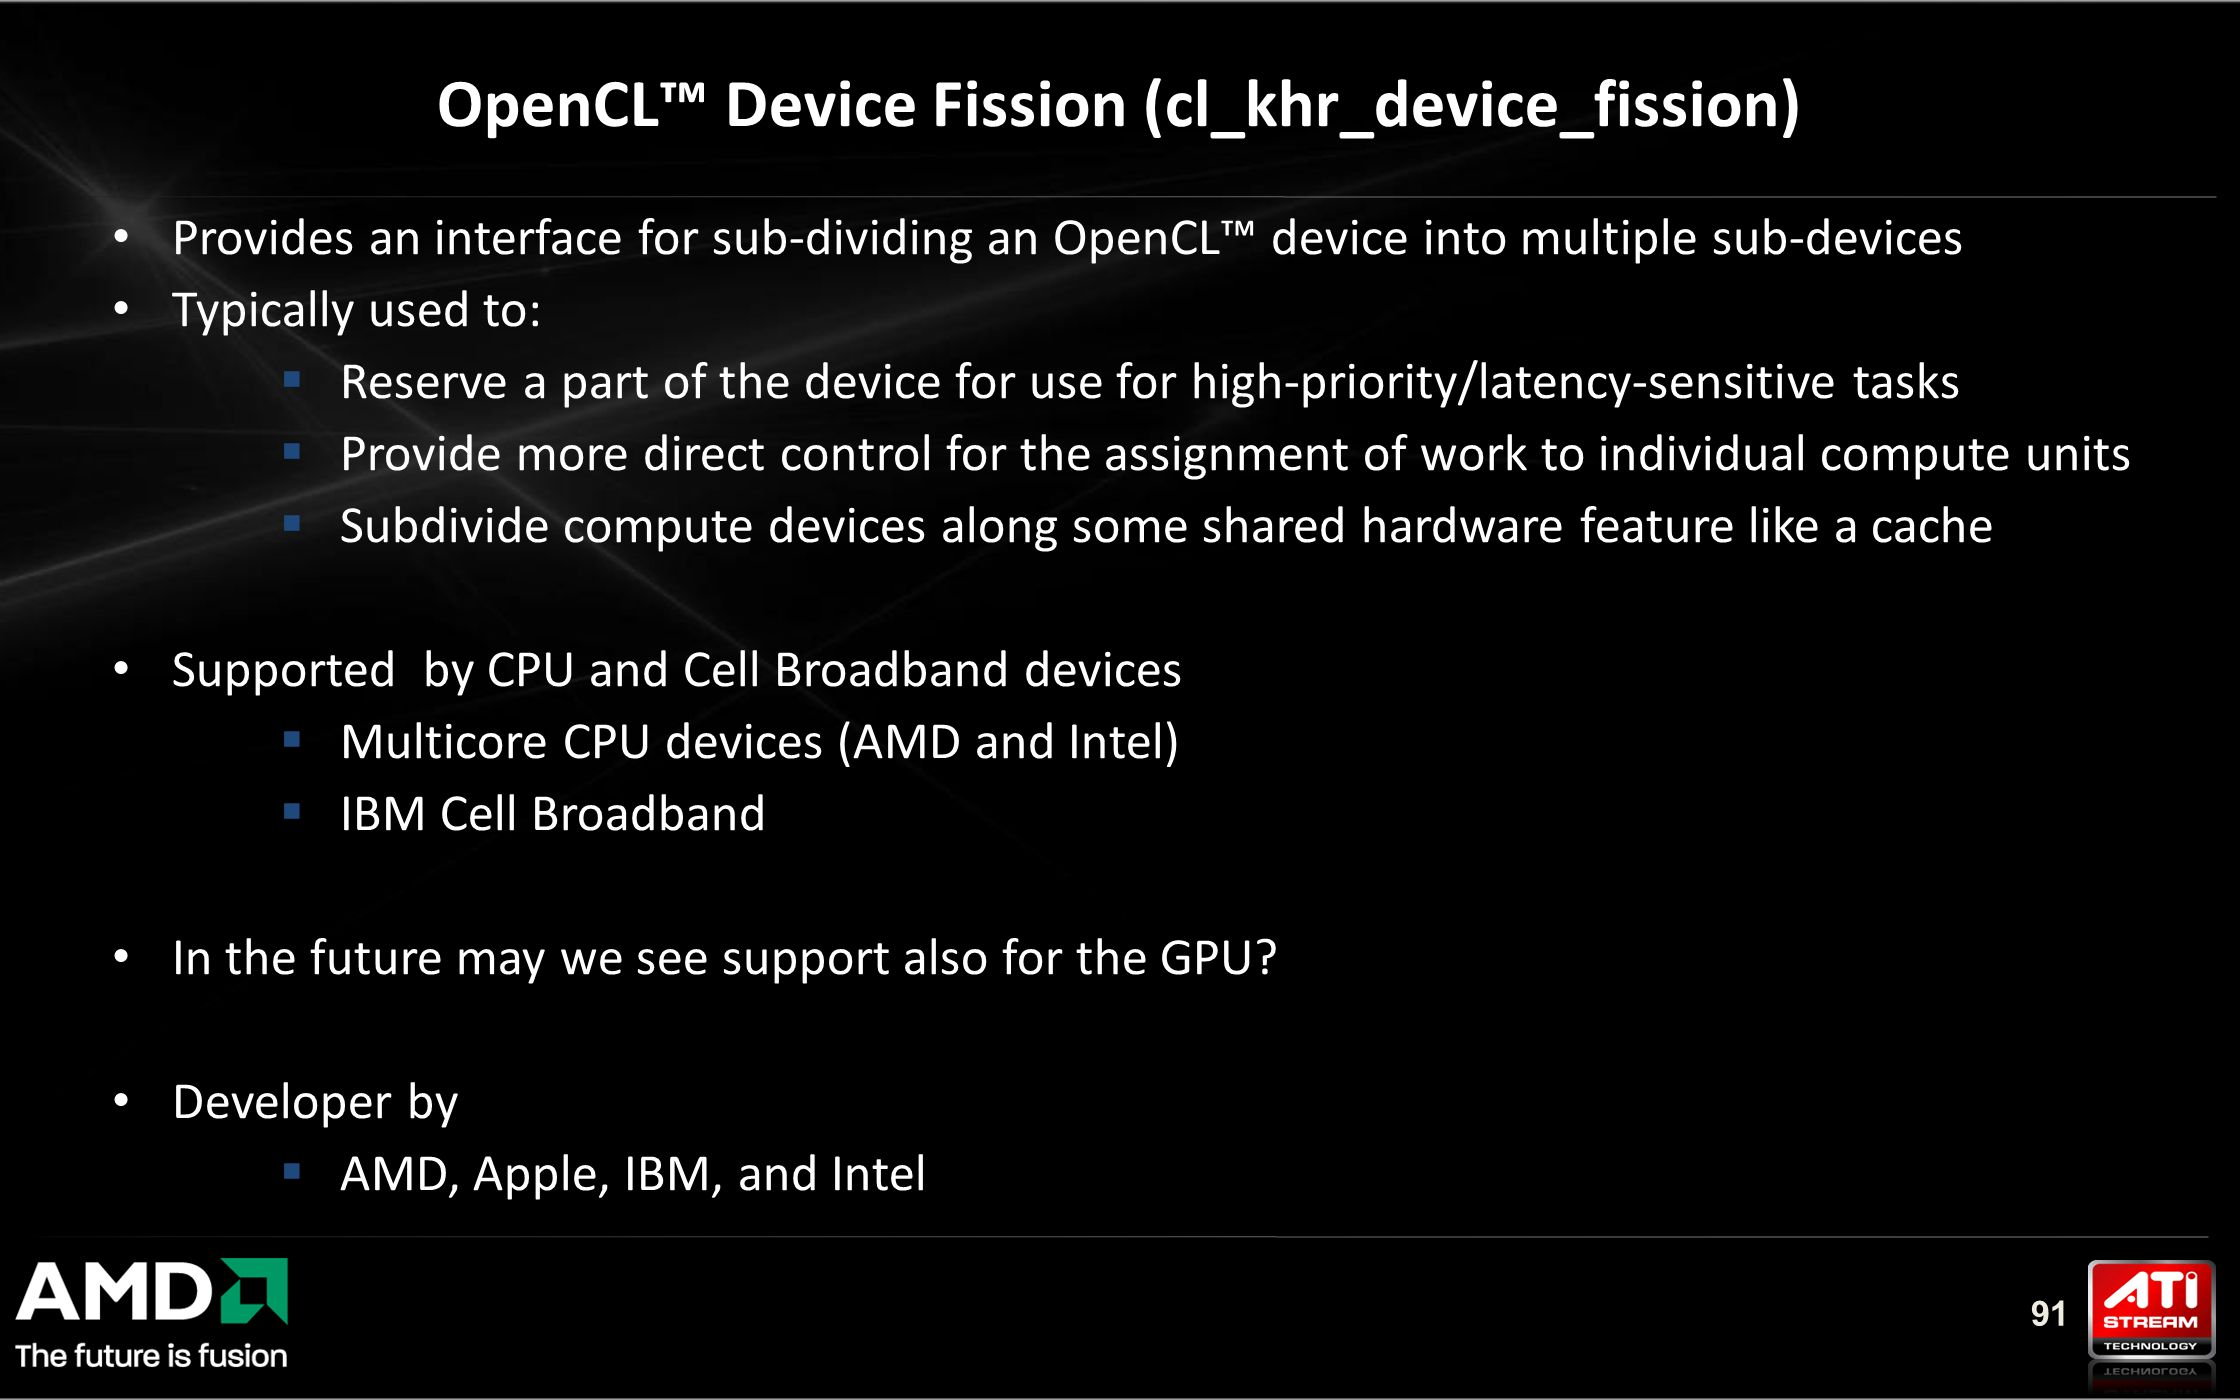 91 Provides an interface for sub-dividing an OpenCL™ device into multiple sub-devices Typically used to:  Reserve a part of the device for use for high-priority/latency-sensitive tasks  Provide more direct control for the assignment of work to individual compute units  Subdivide compute devices along some shared hardware feature like a cache Supported by CPU and Cell Broadband devices  Multicore CPU devices (AMD and Intel)  IBM Cell Broadband In the future may we see support also for the GPU.